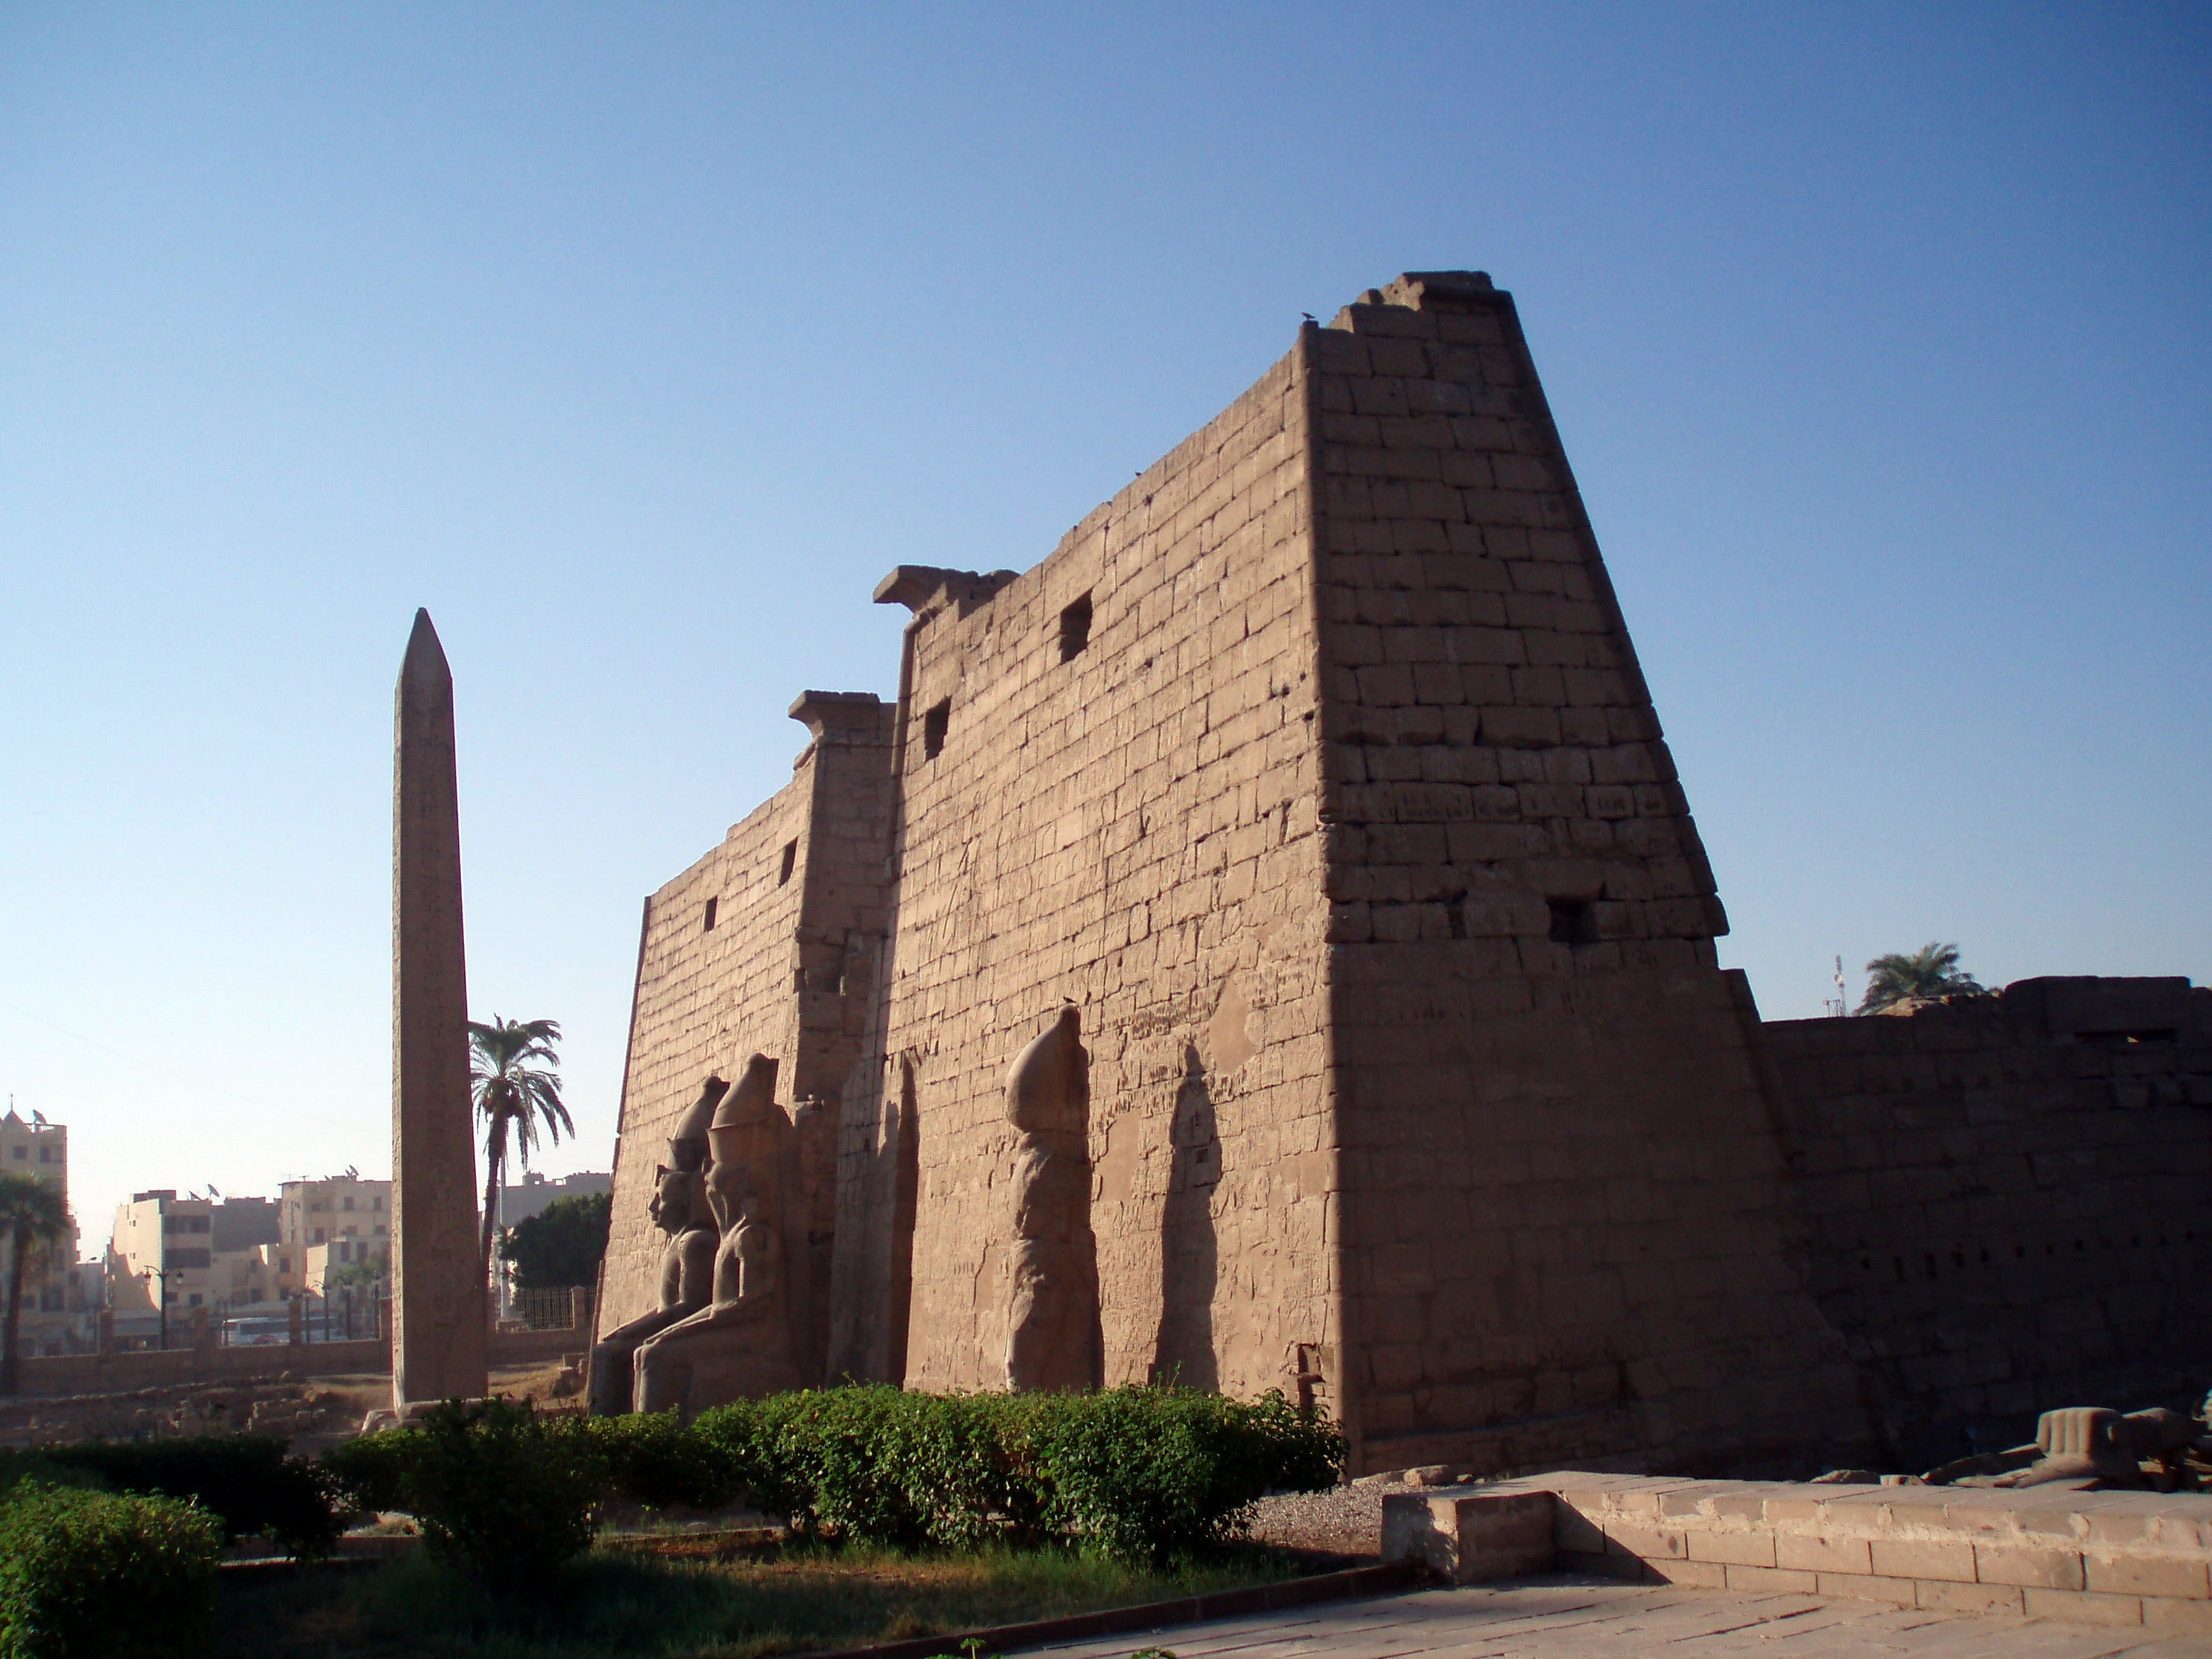 Pared en Templo de Luxor